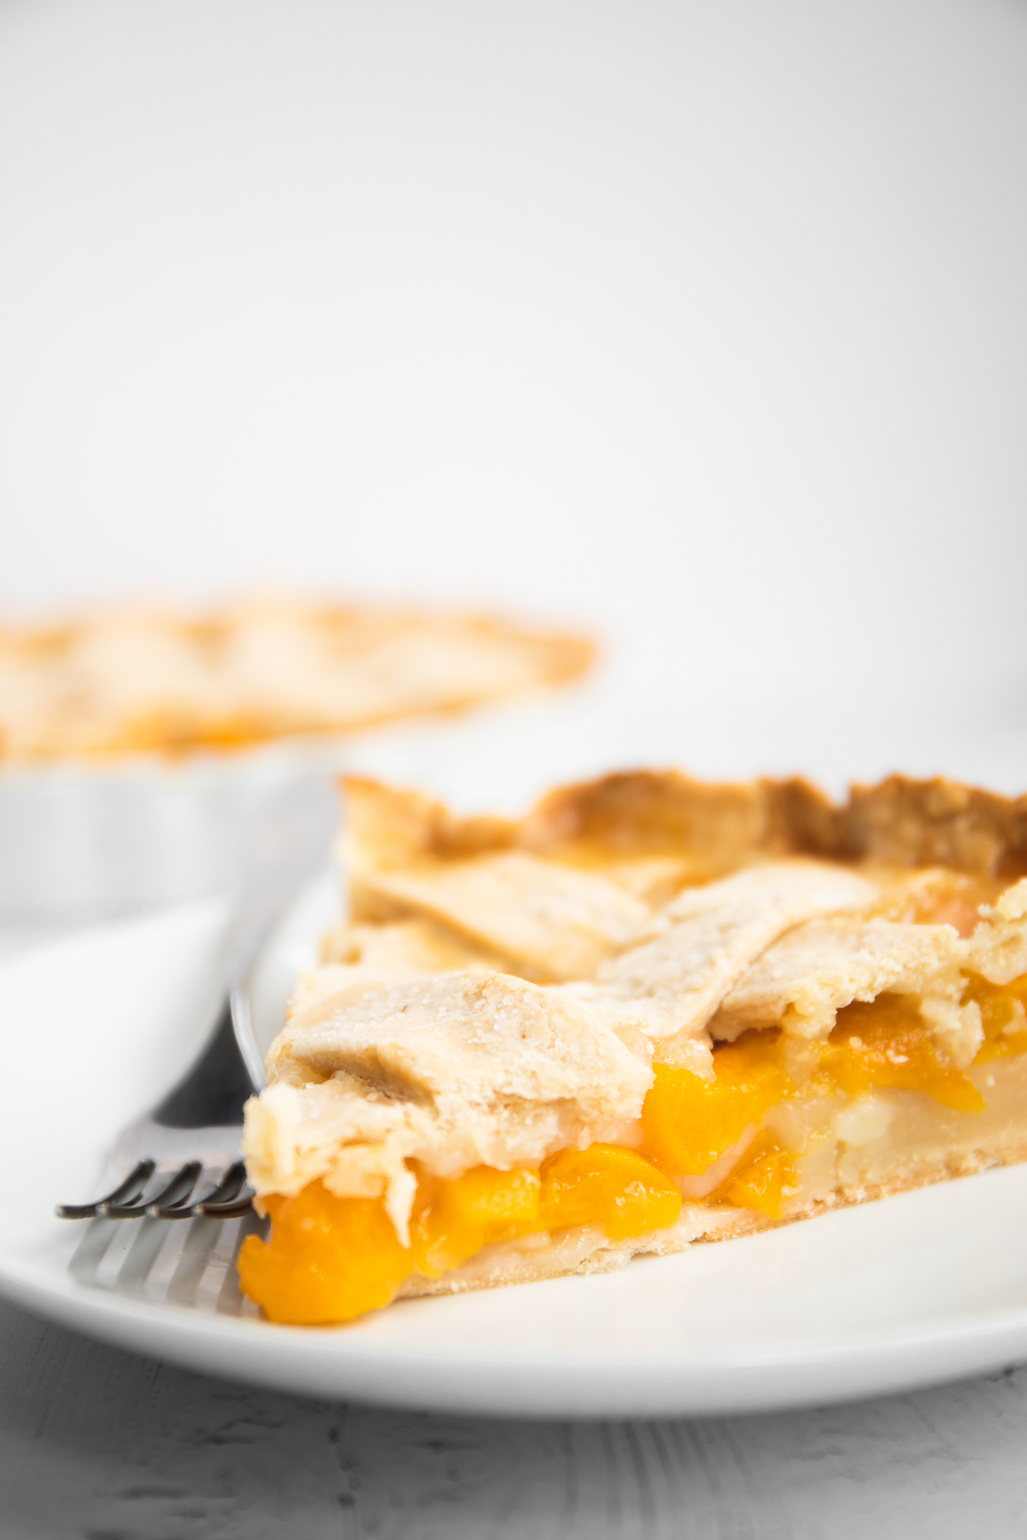 Easy Peach Pie With Canned Peaches Spoonful Of Kindness